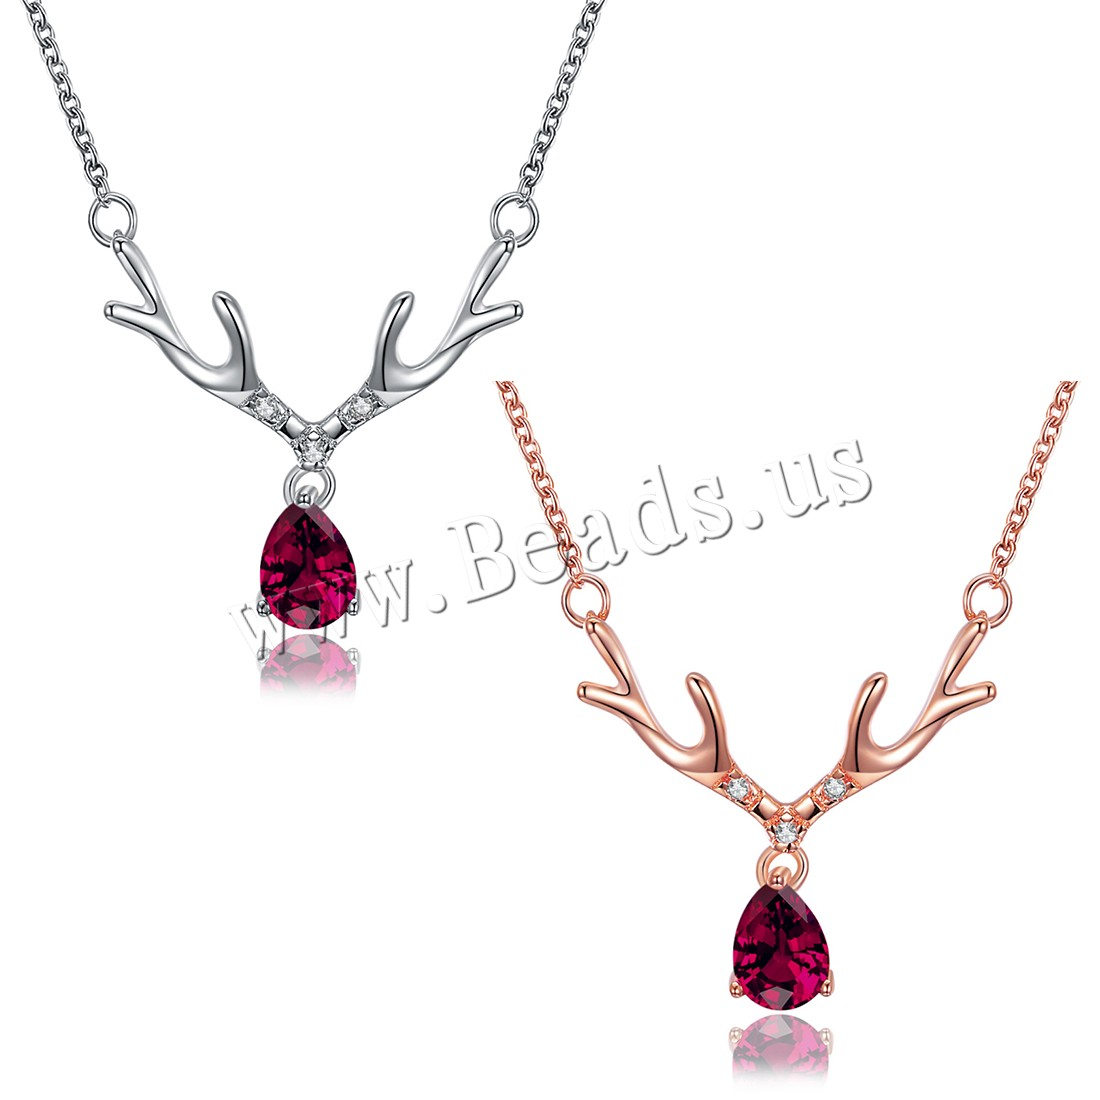 Buy Comeon® Jewelry Necklace Brass Antlers plated Christmas jewelry & oval chain & micro pave cubic zirconia & woman colors choice nickel lead & cadmium free 26x25mm Sold Per Approx 19.5 Inch Strand